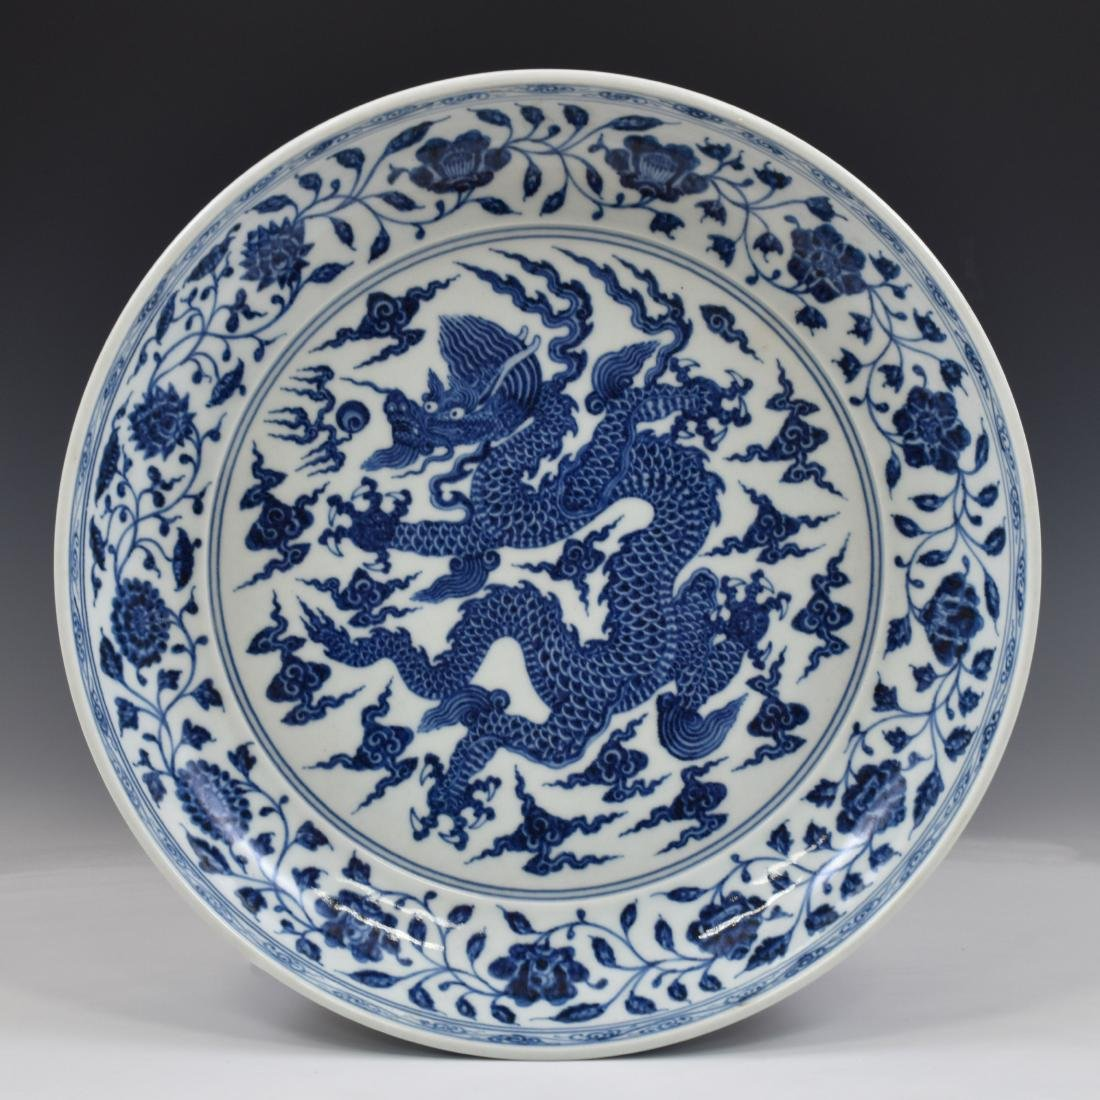 MING XUANDE BLUE & WHITE DRAGON PLATE